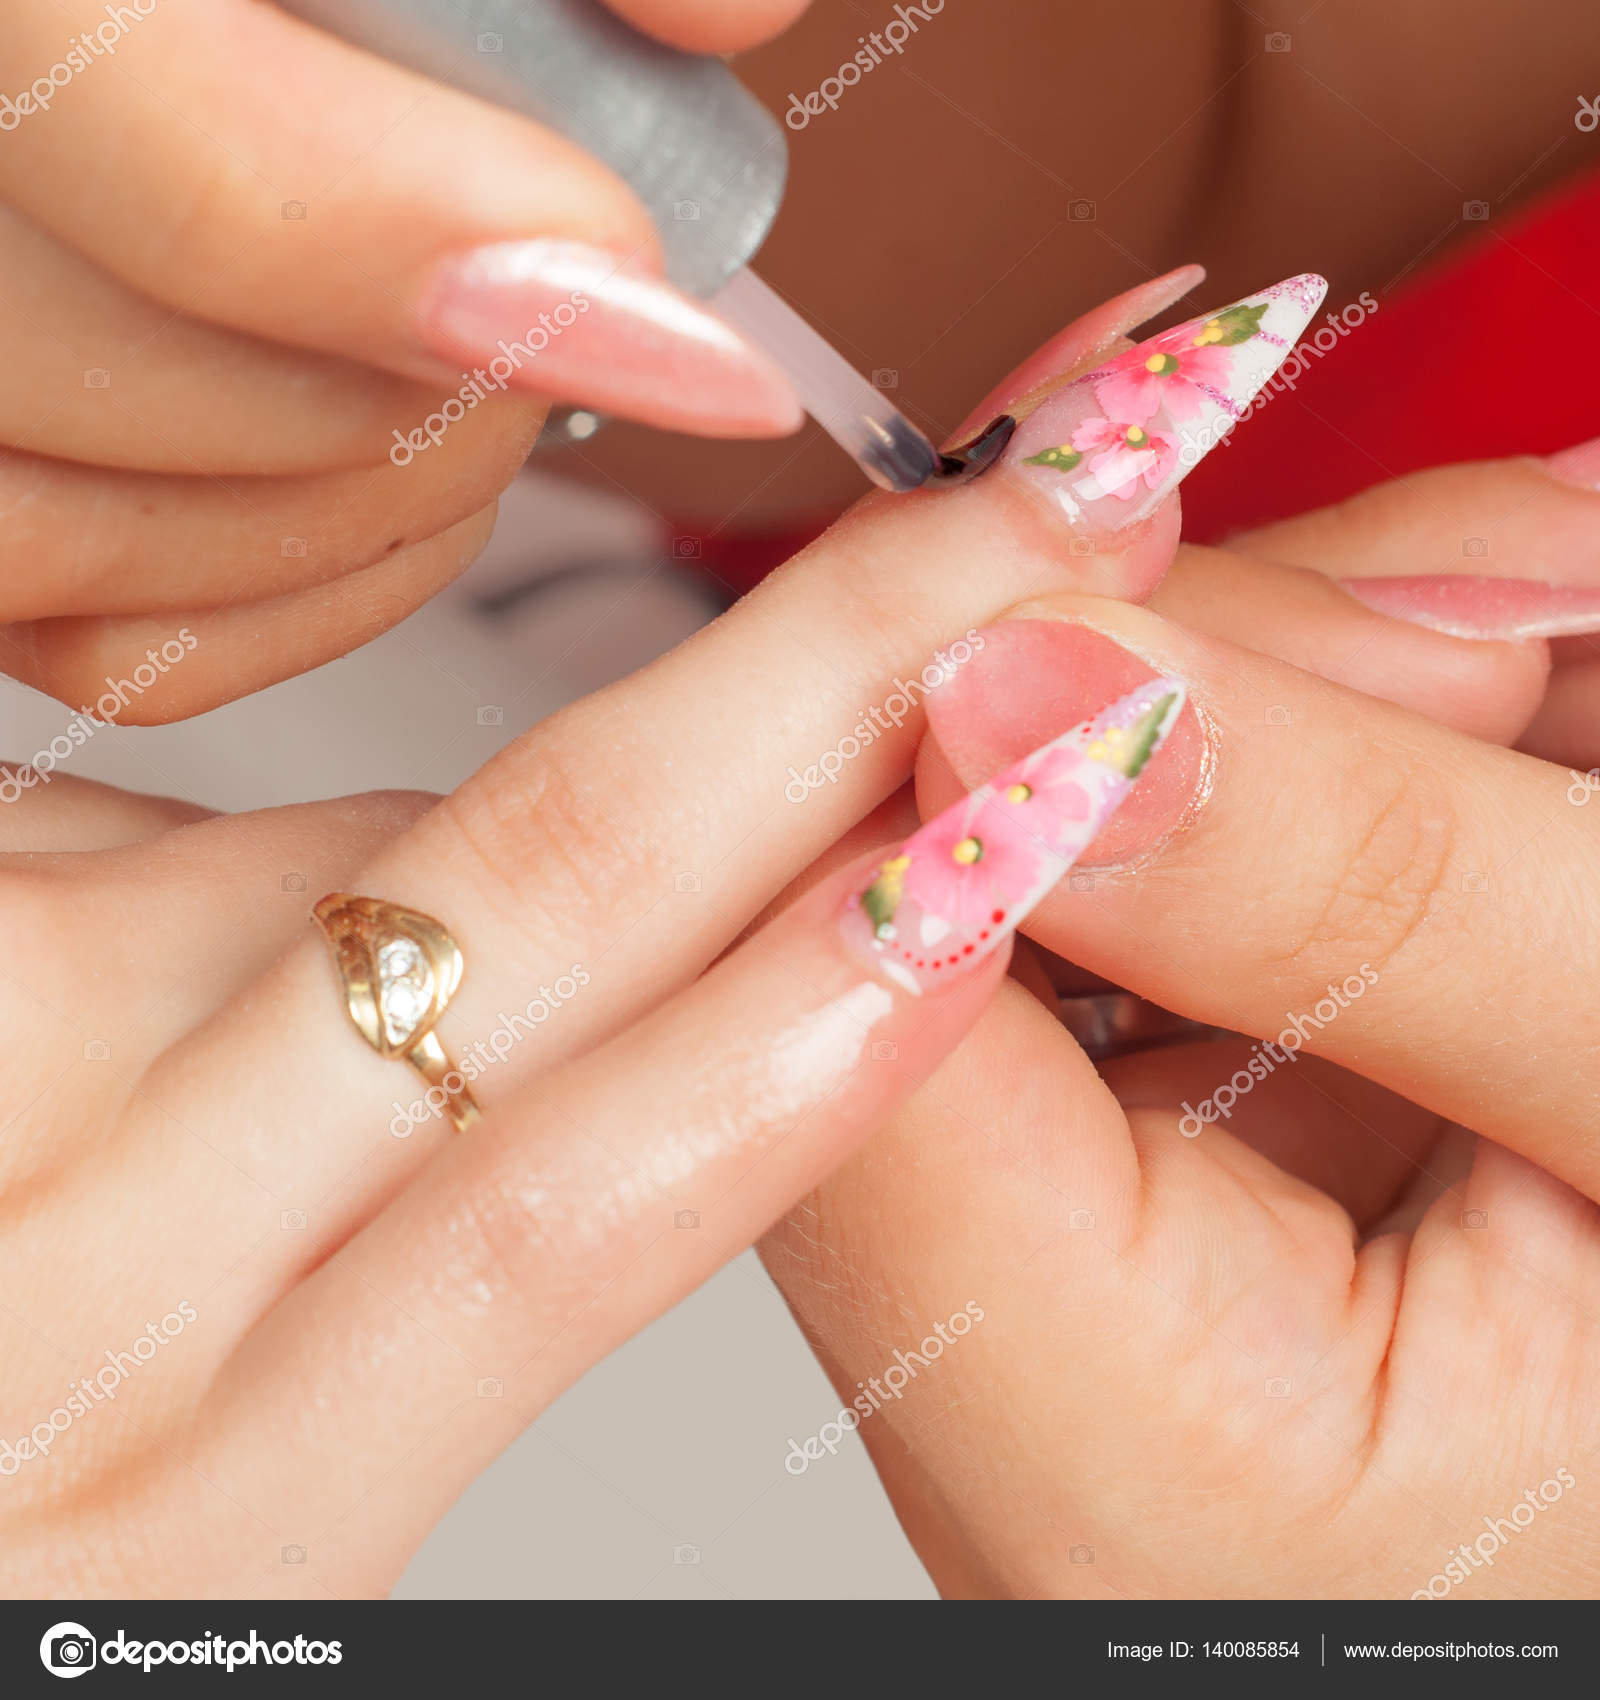 Manicure Process In Beauty Salon Showing Drawing And Polishing Of Artificial Fingernails Stock Photo